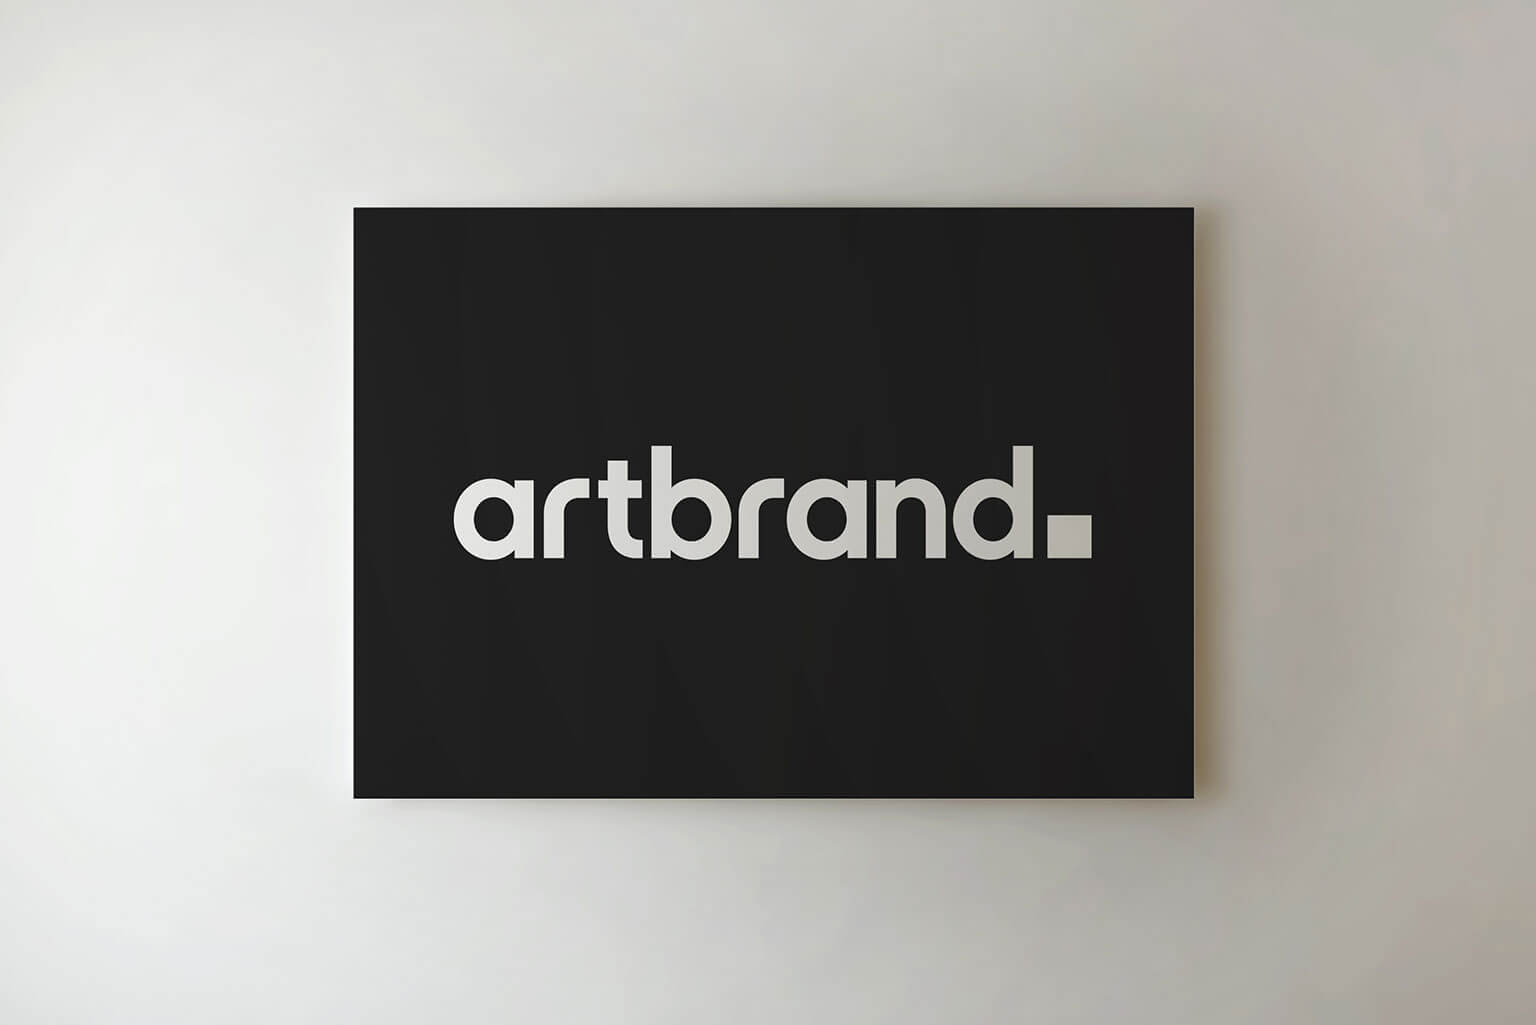 Artbrand, visual identity, logo, stationery, poster ad for a London based art gallery